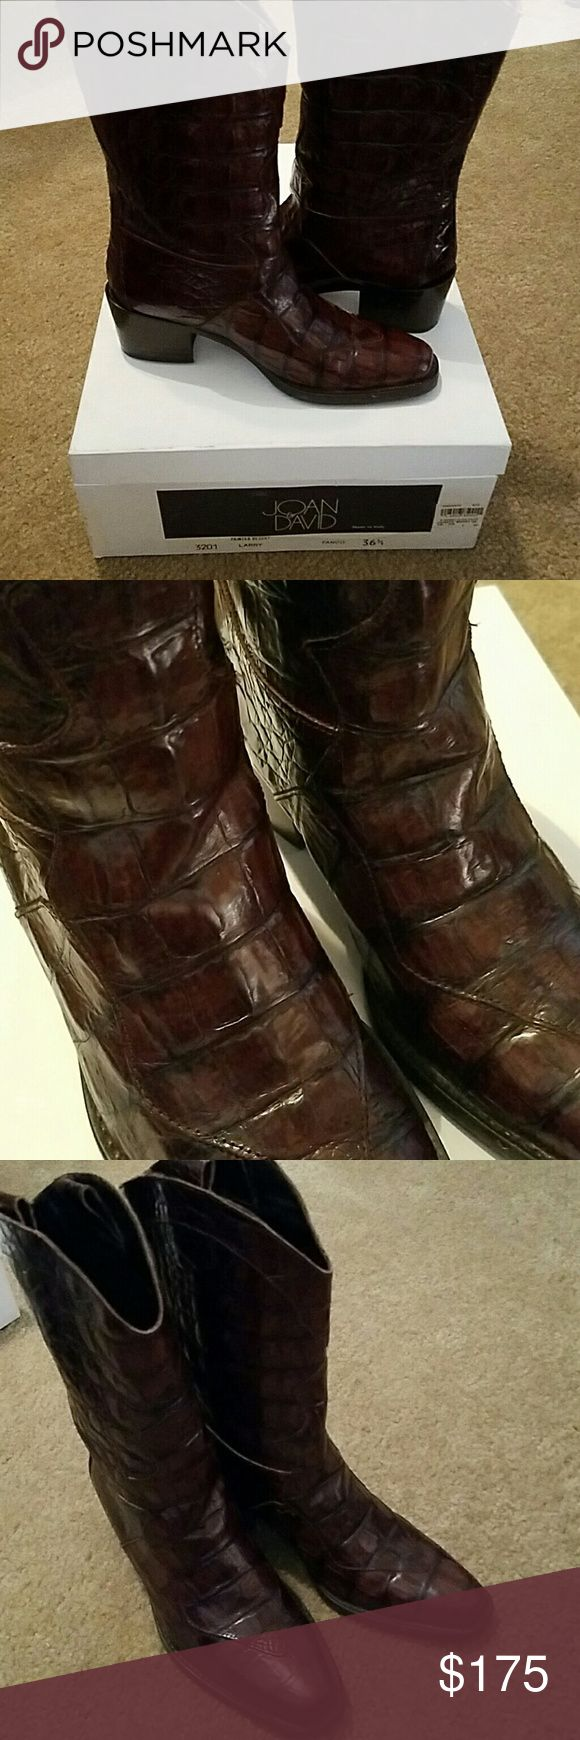 JOAN & DAVID crocodile cowboy boots Like new, beautiful detailed crocodile boots with 2 inch heel, 11 inch shaft. Gorgeous. Joan & David Shoes Heeled Boots